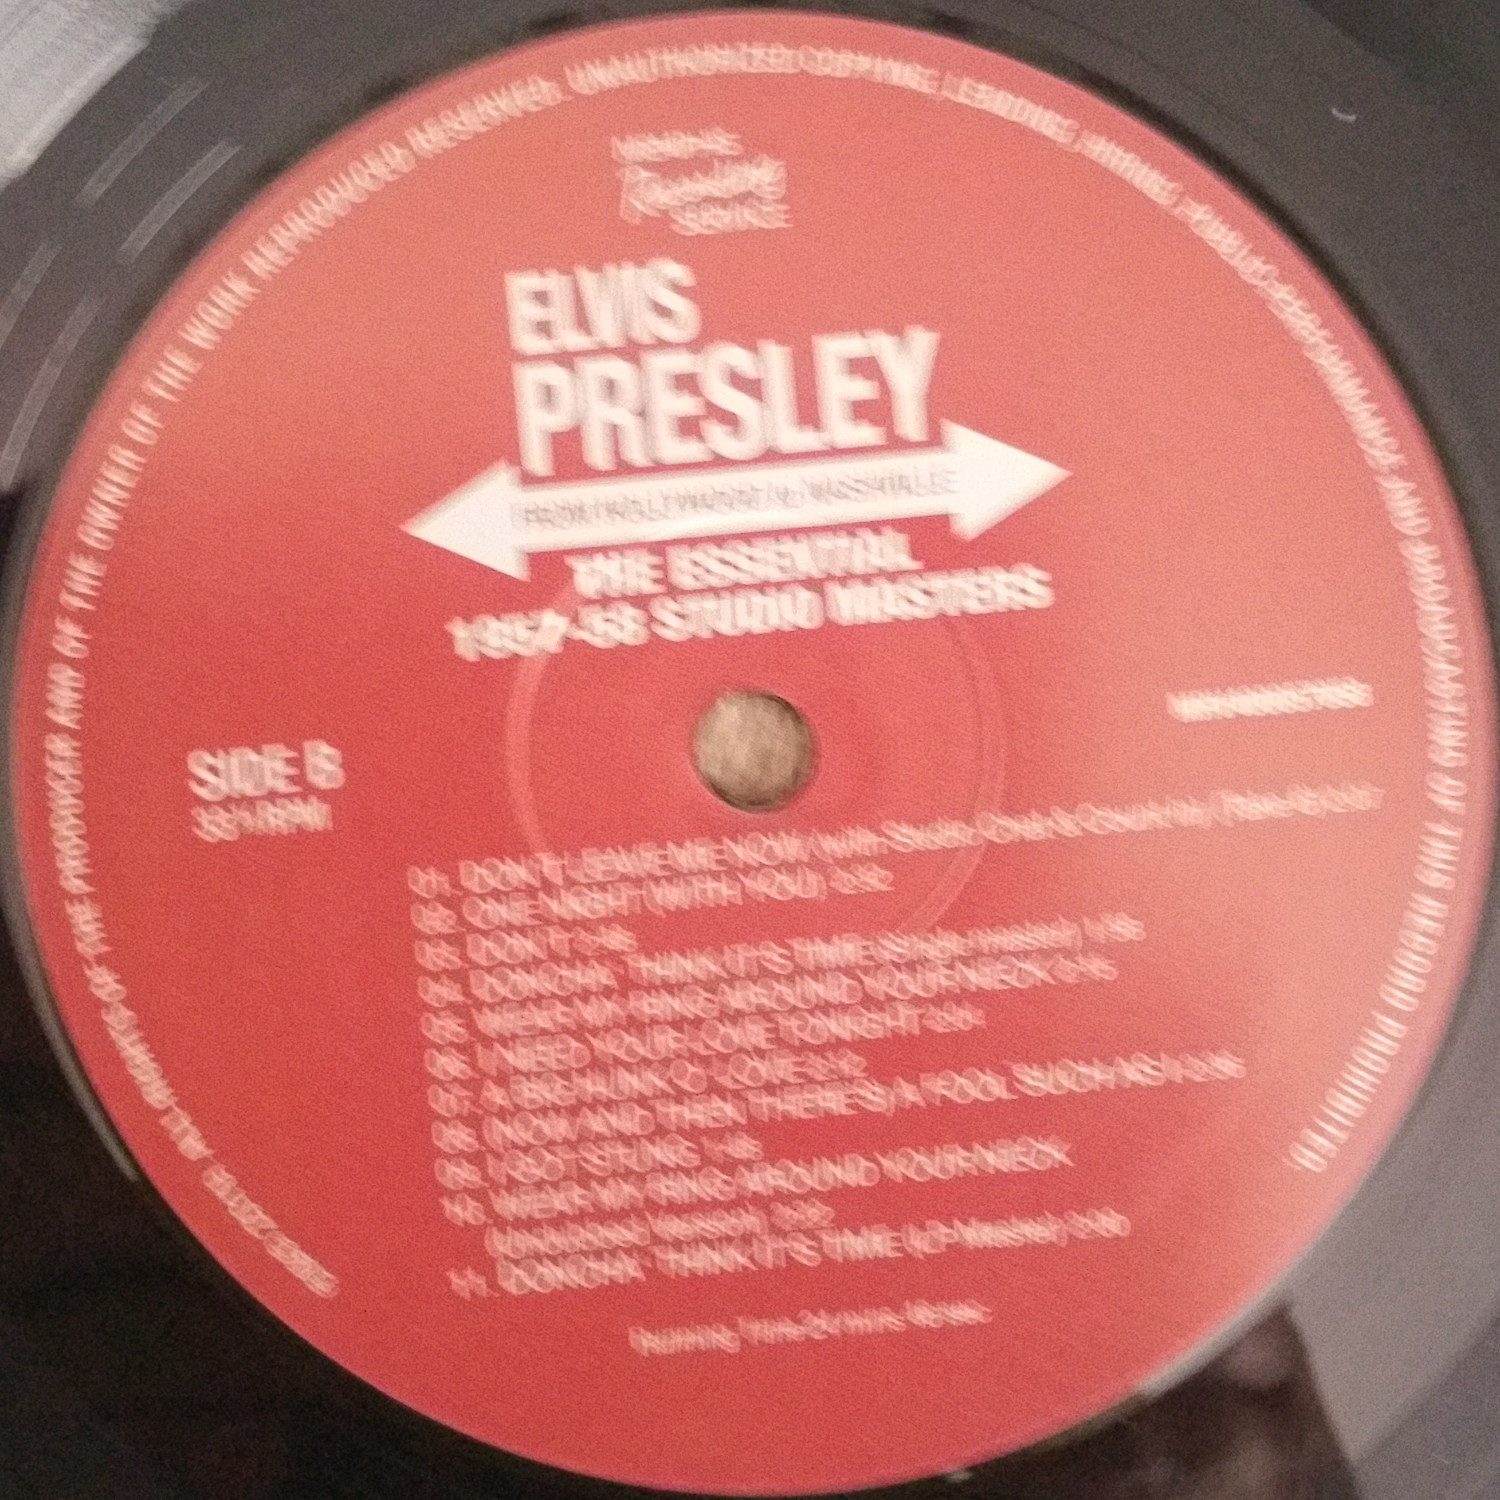 FROM HOLLYWOOD TO NASHVILLE (The Essential 1957-58 Studio Masters) 74gkgo